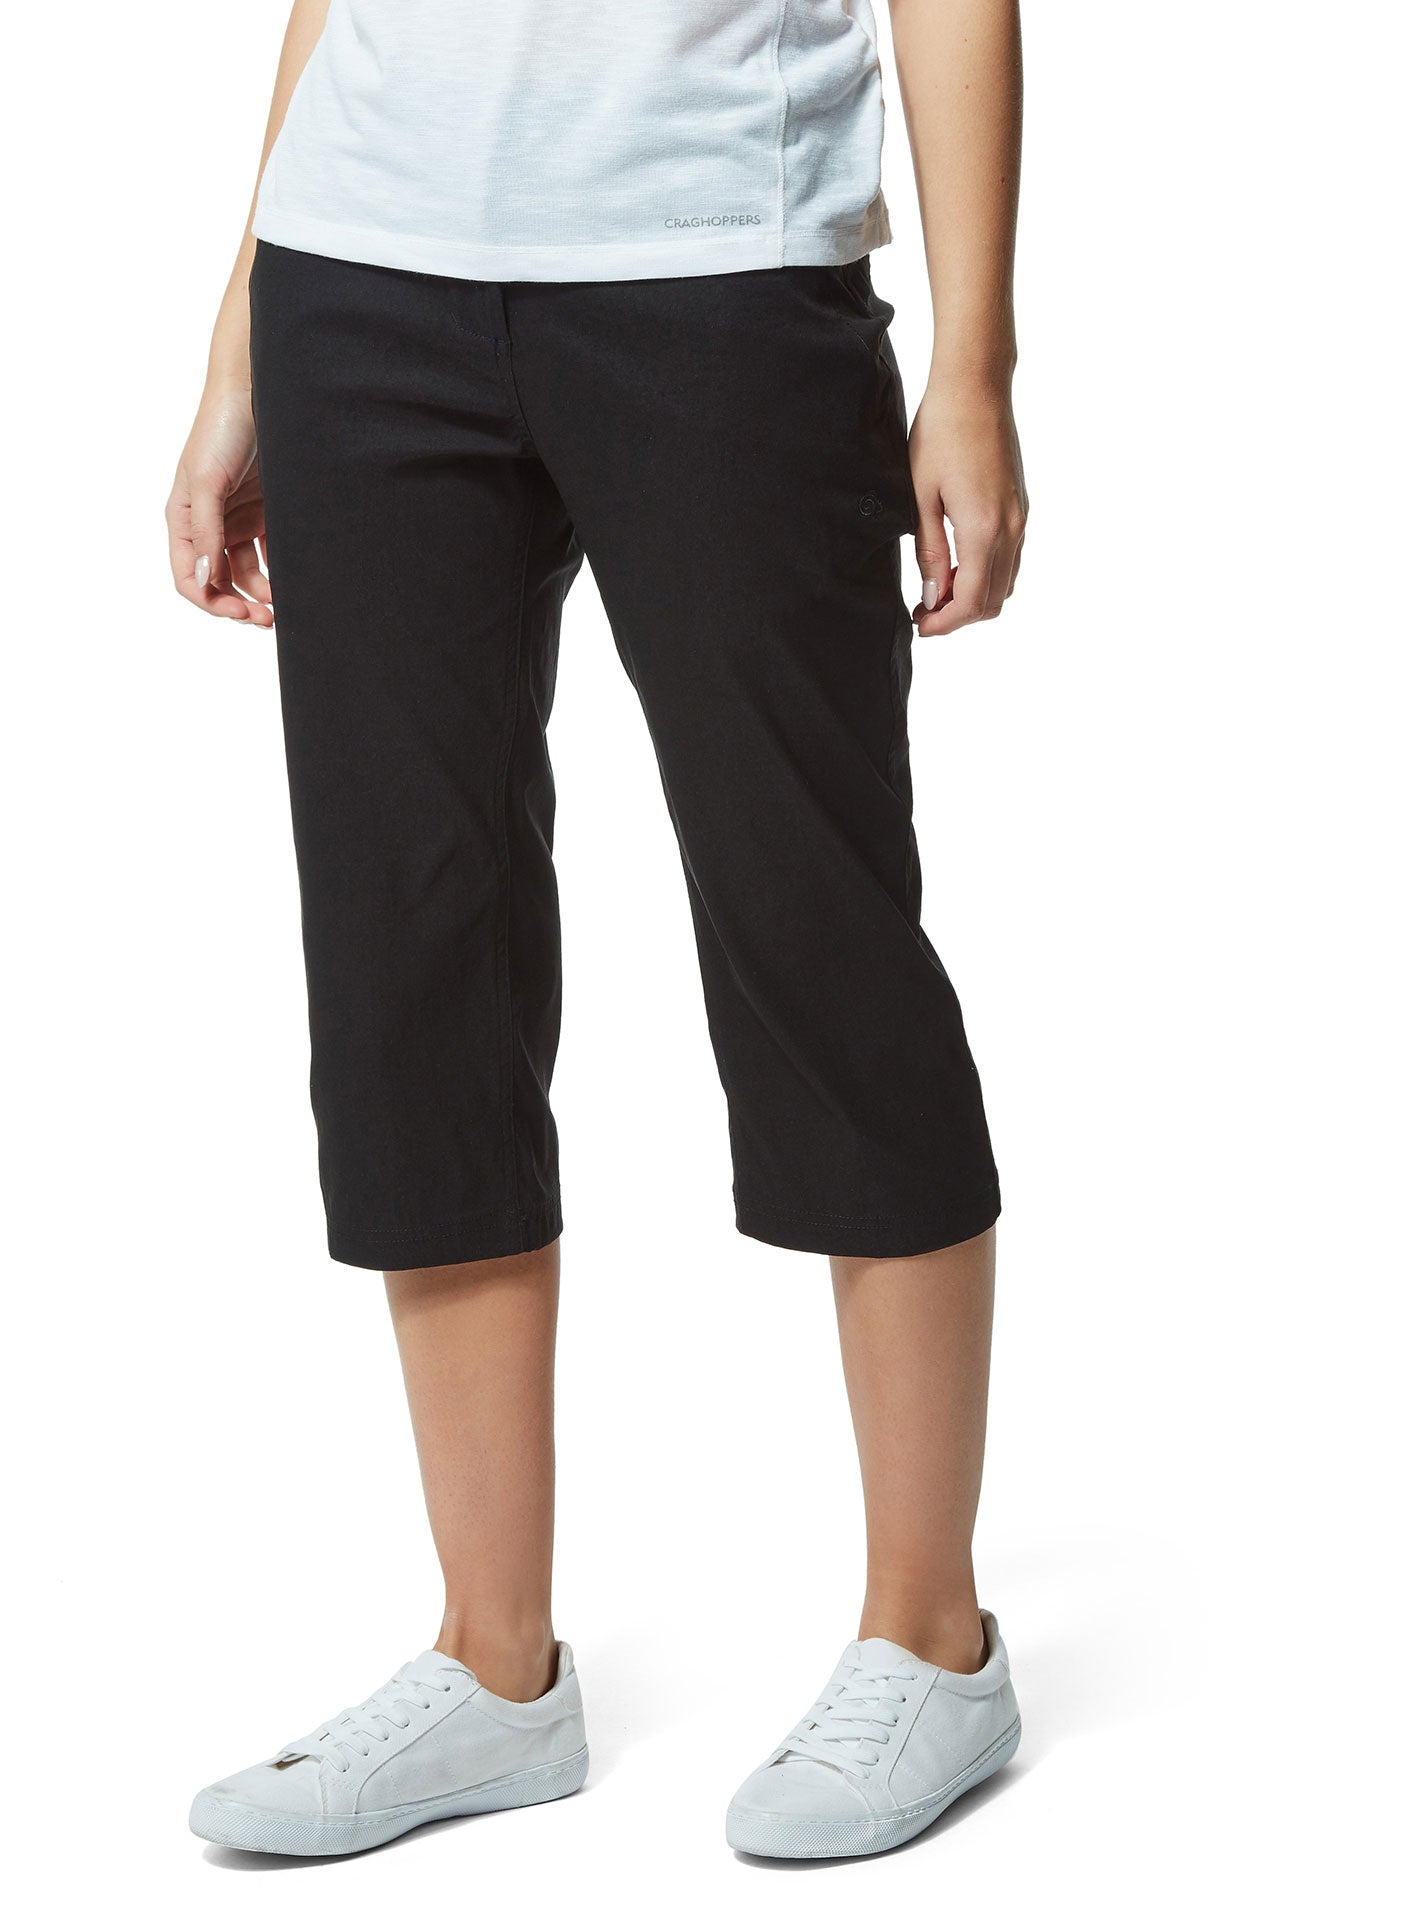 Lady wears Black Craghoppers Kiwi Pro Crop II Trousers